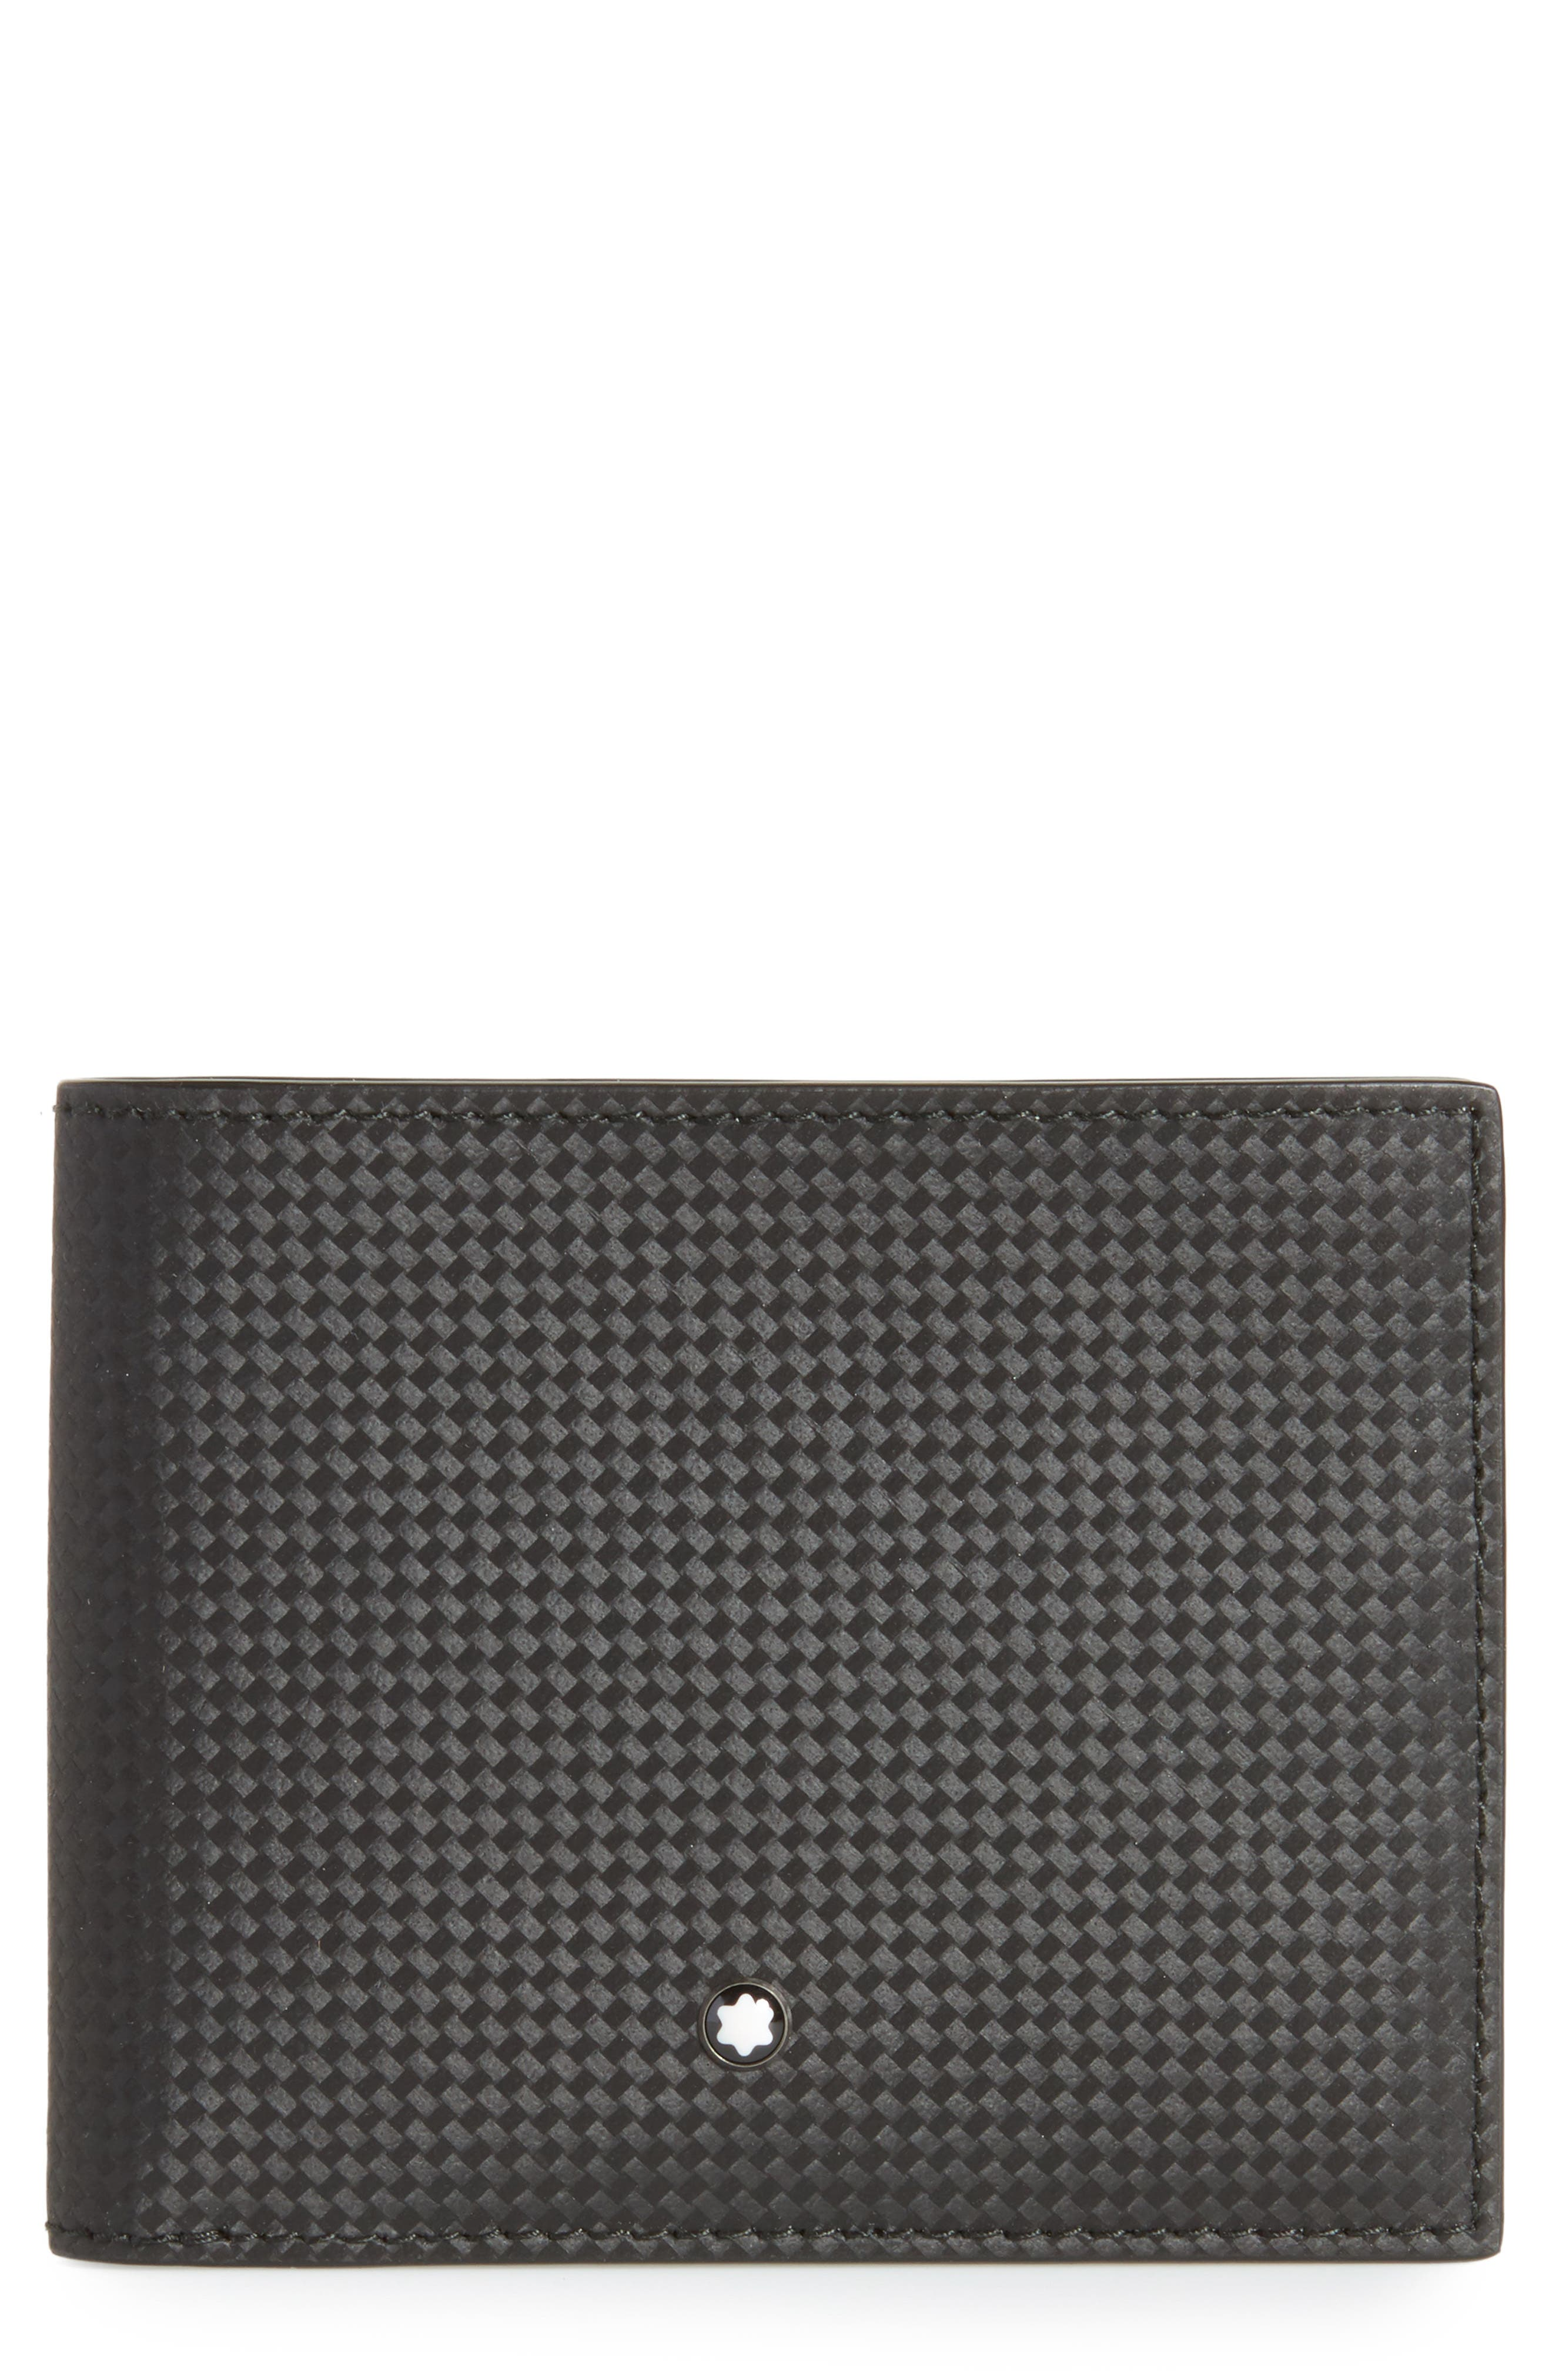 Extreme Leather Wallet,                             Main thumbnail 1, color,                             BLACK